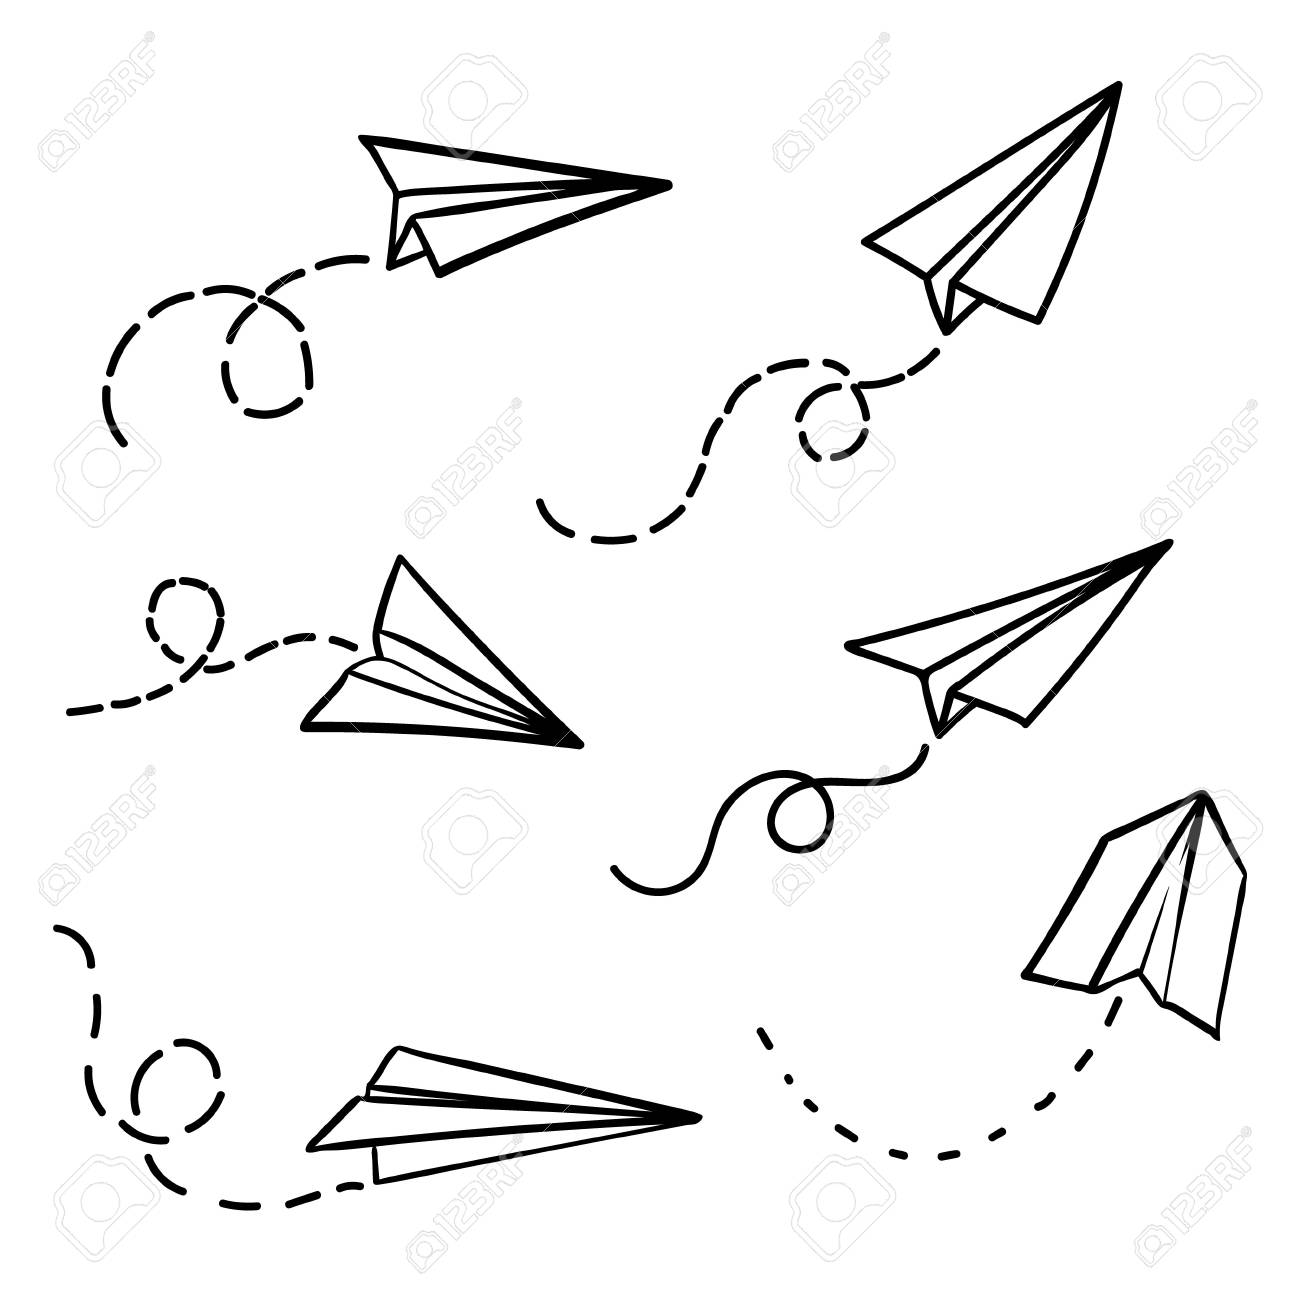 Vector paper airplane. Travel, route symbol. Set of vector illustration of hand drawn paper plane. Isolated. Outline. Hand drawn doodle airplane. Black linear paper plane icon. - 90063945